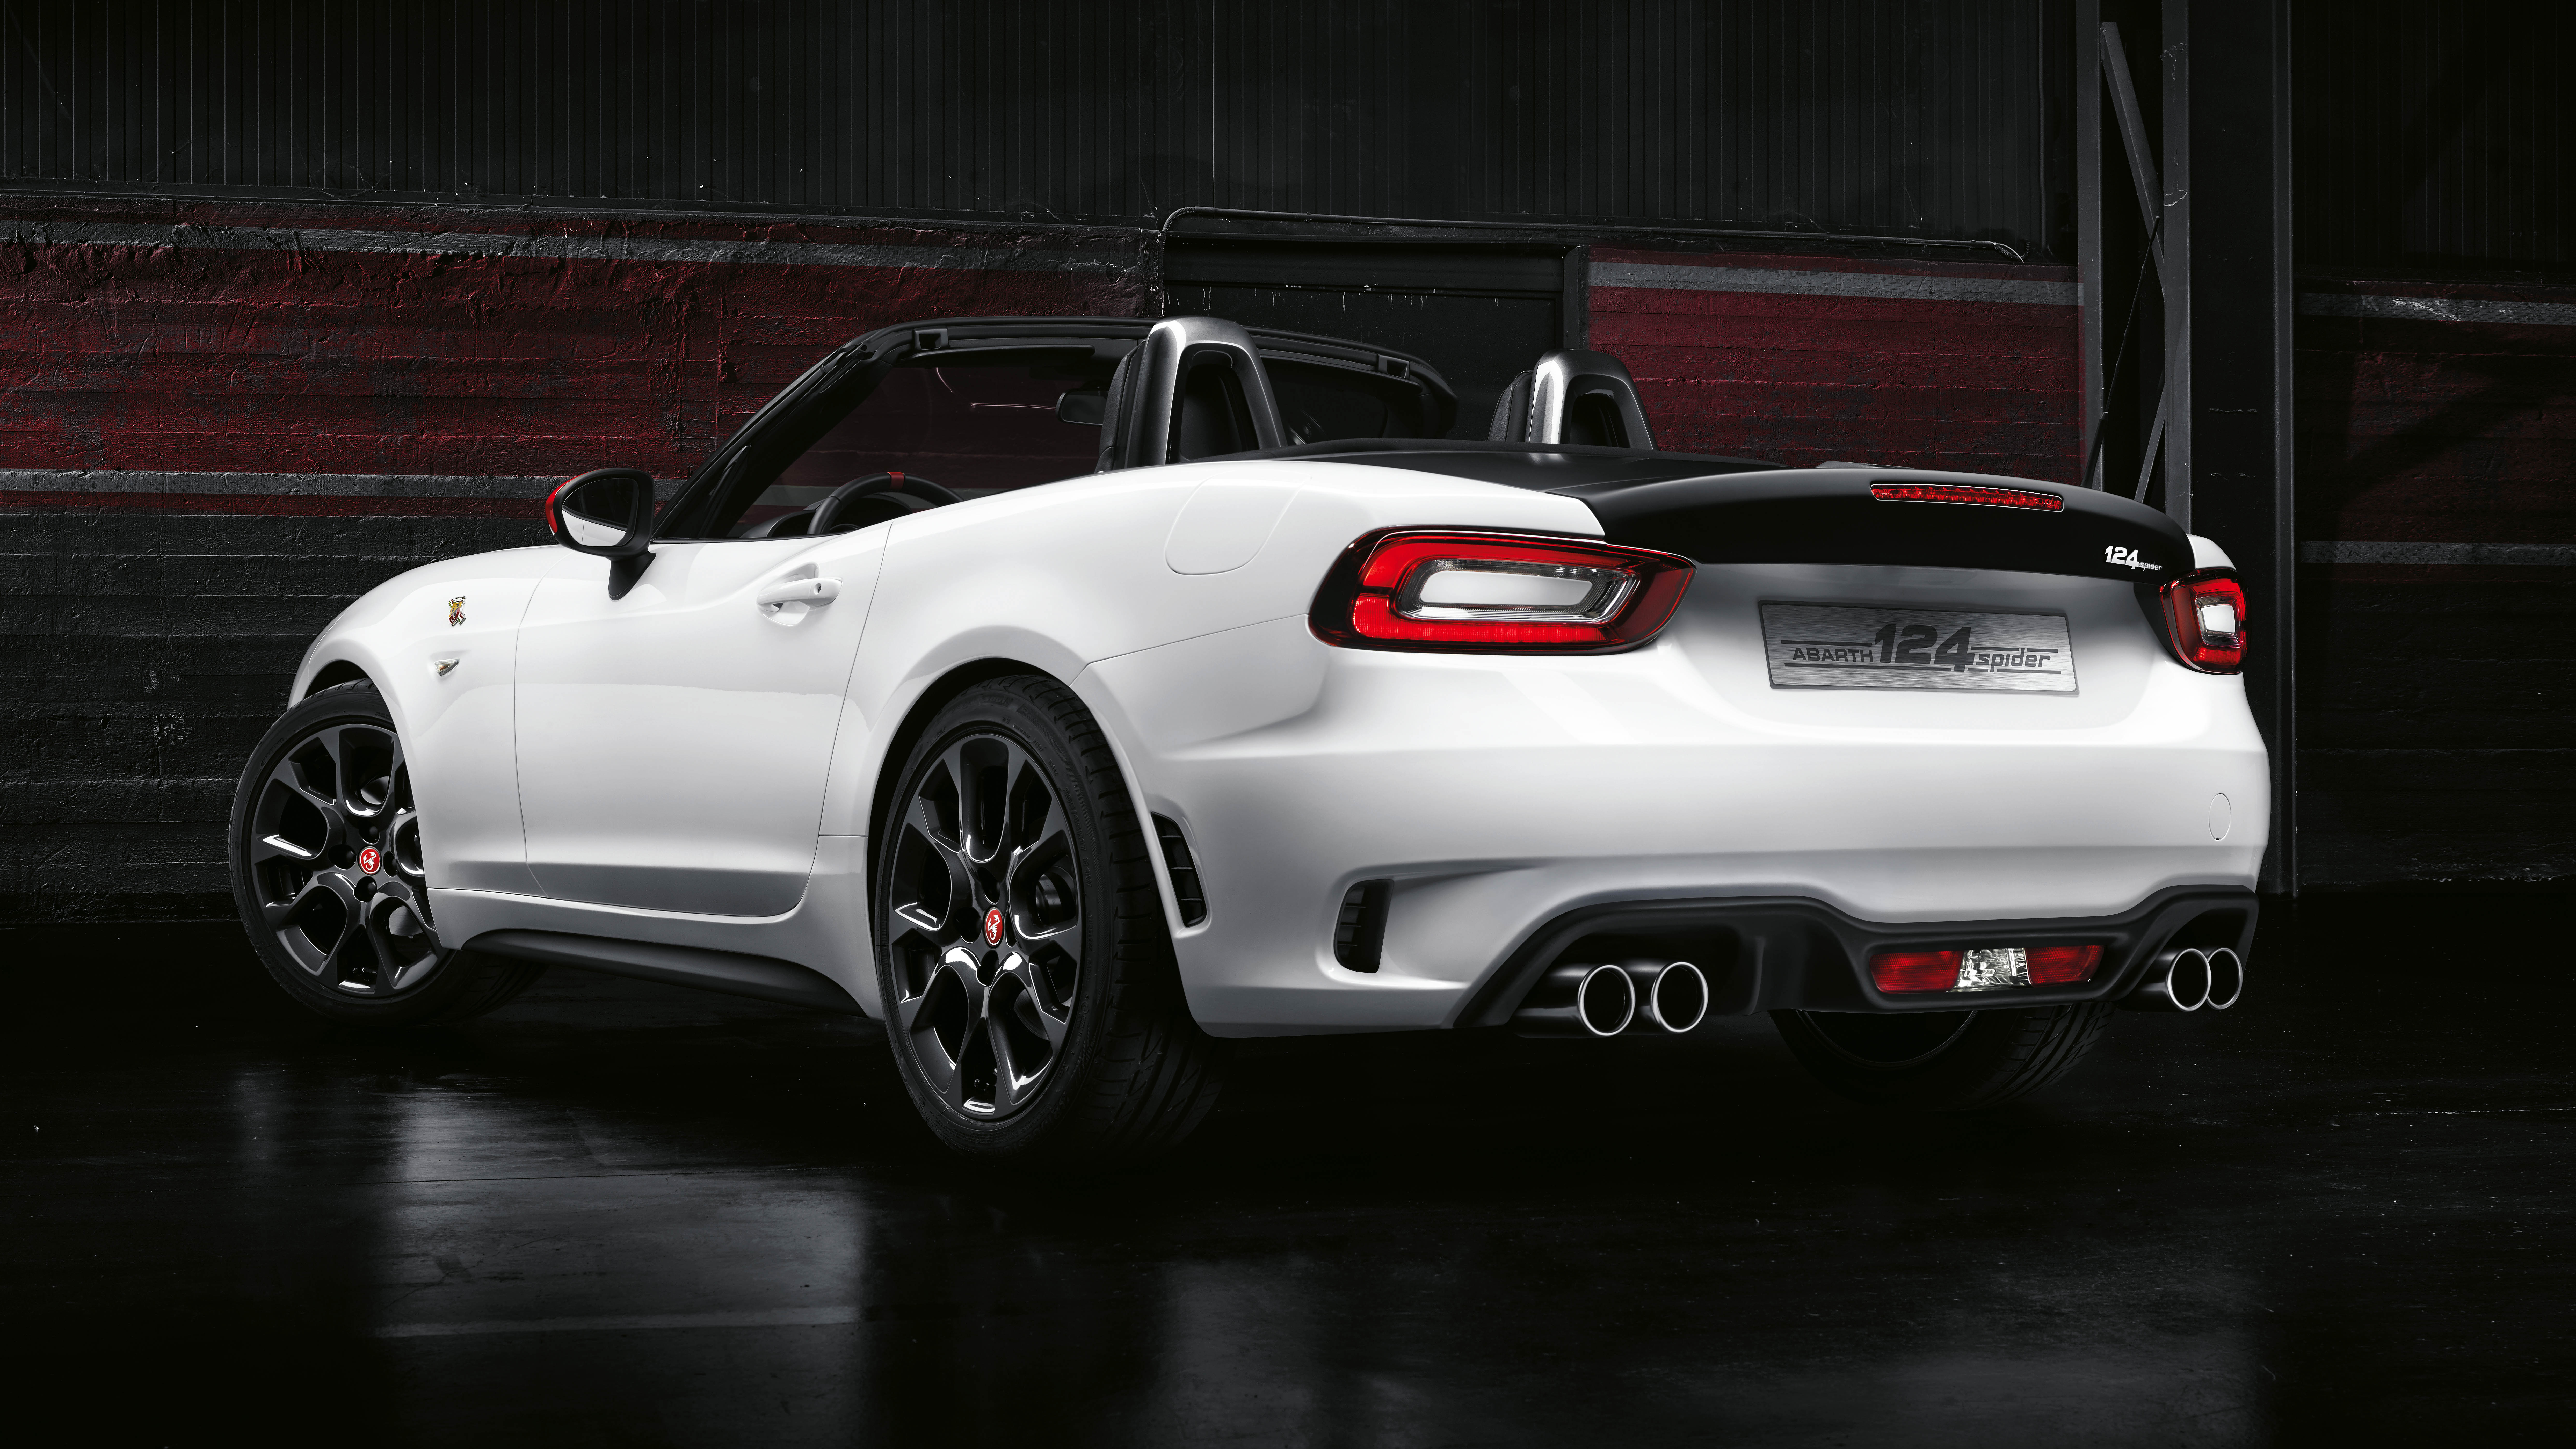 abarth 39 s 124 spider is here and there 39 s a 300bhp rally. Black Bedroom Furniture Sets. Home Design Ideas